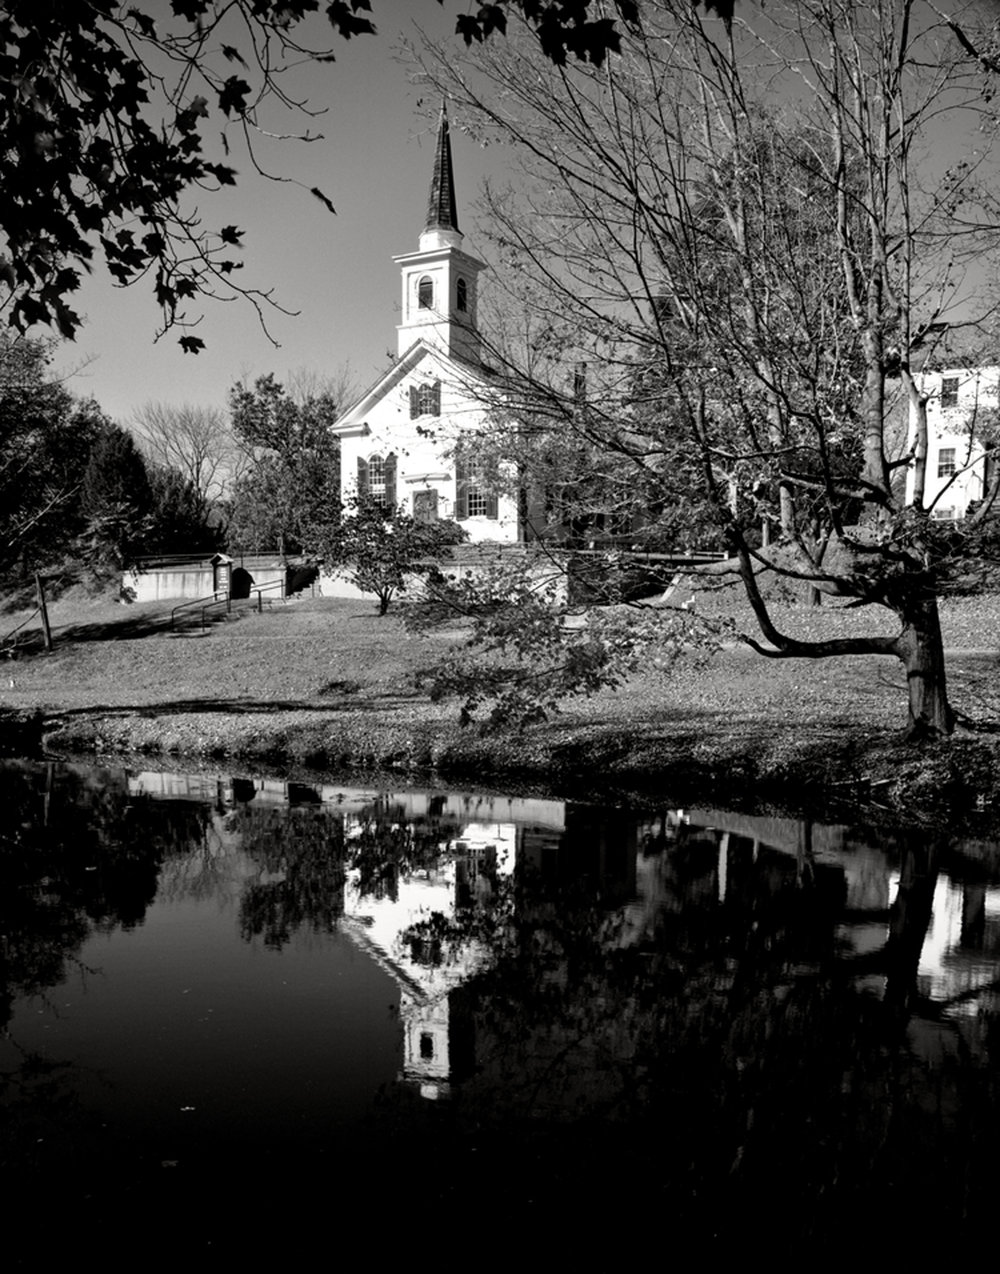 4x5_for_365_project_0304_Waterloo_Village_church_reflection.jpg